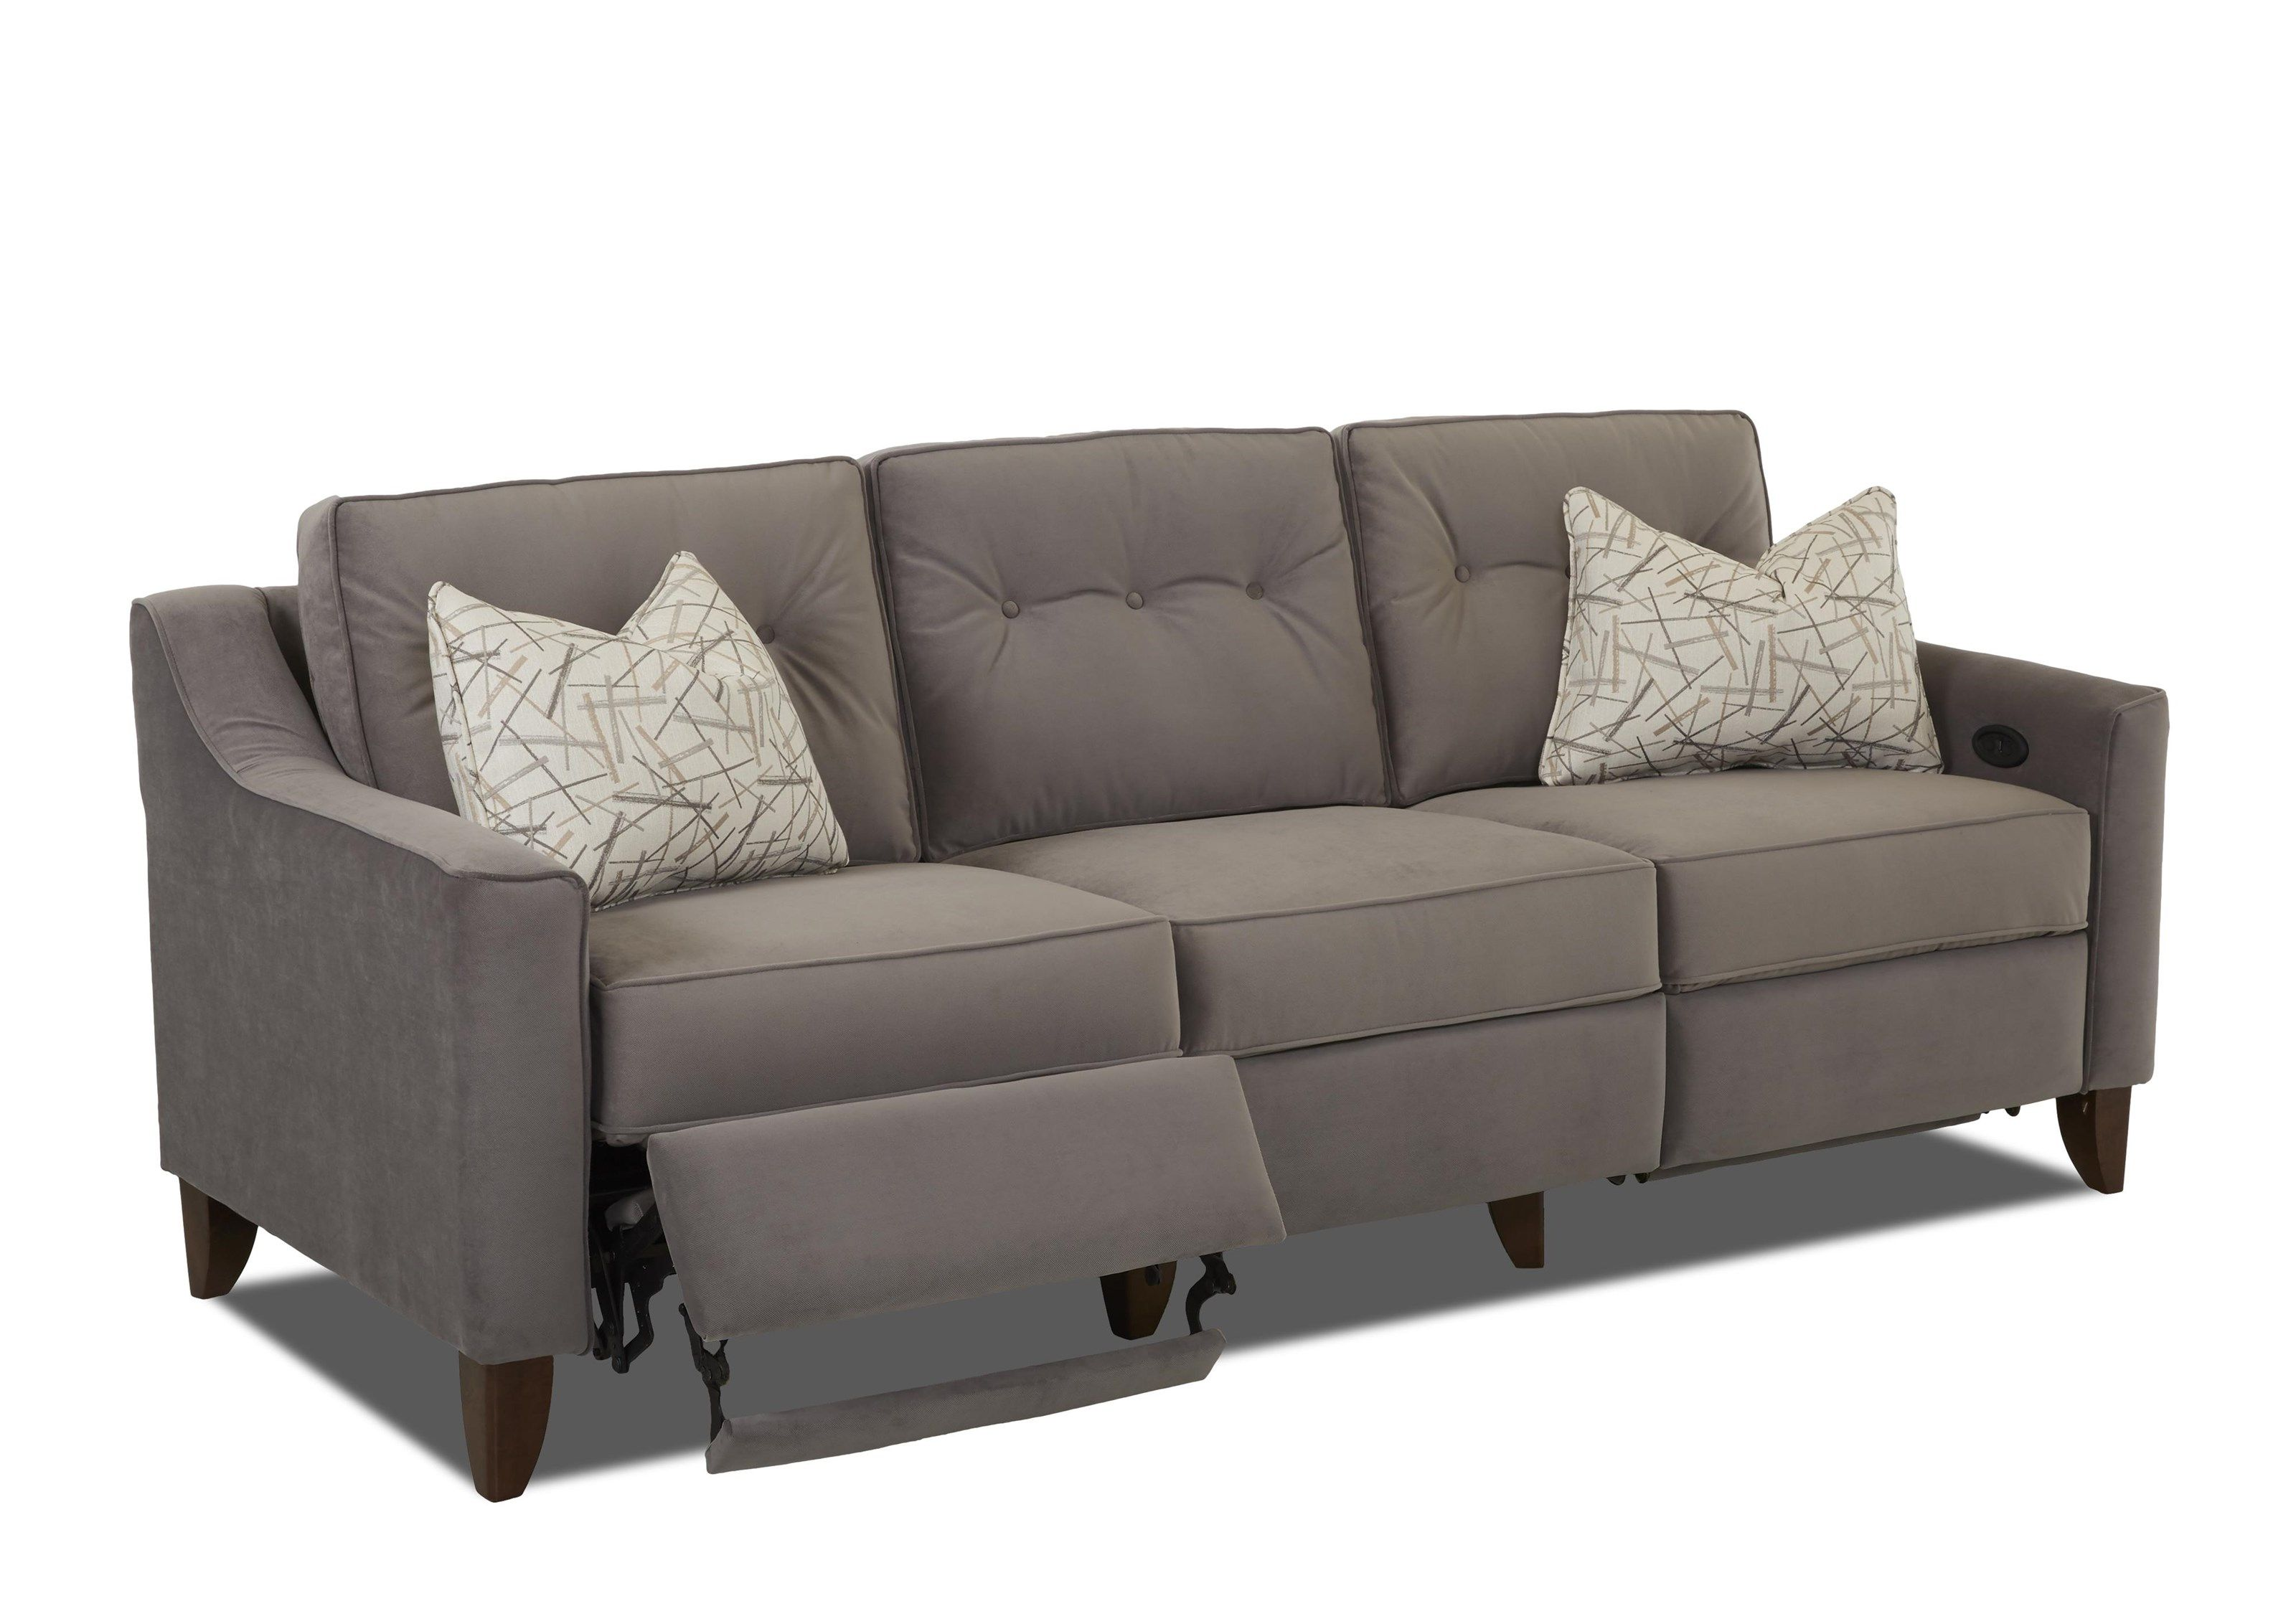 Power Reclining Sofa Modern Recliner Sofa Reclining Sofa Power Reclining Sofa